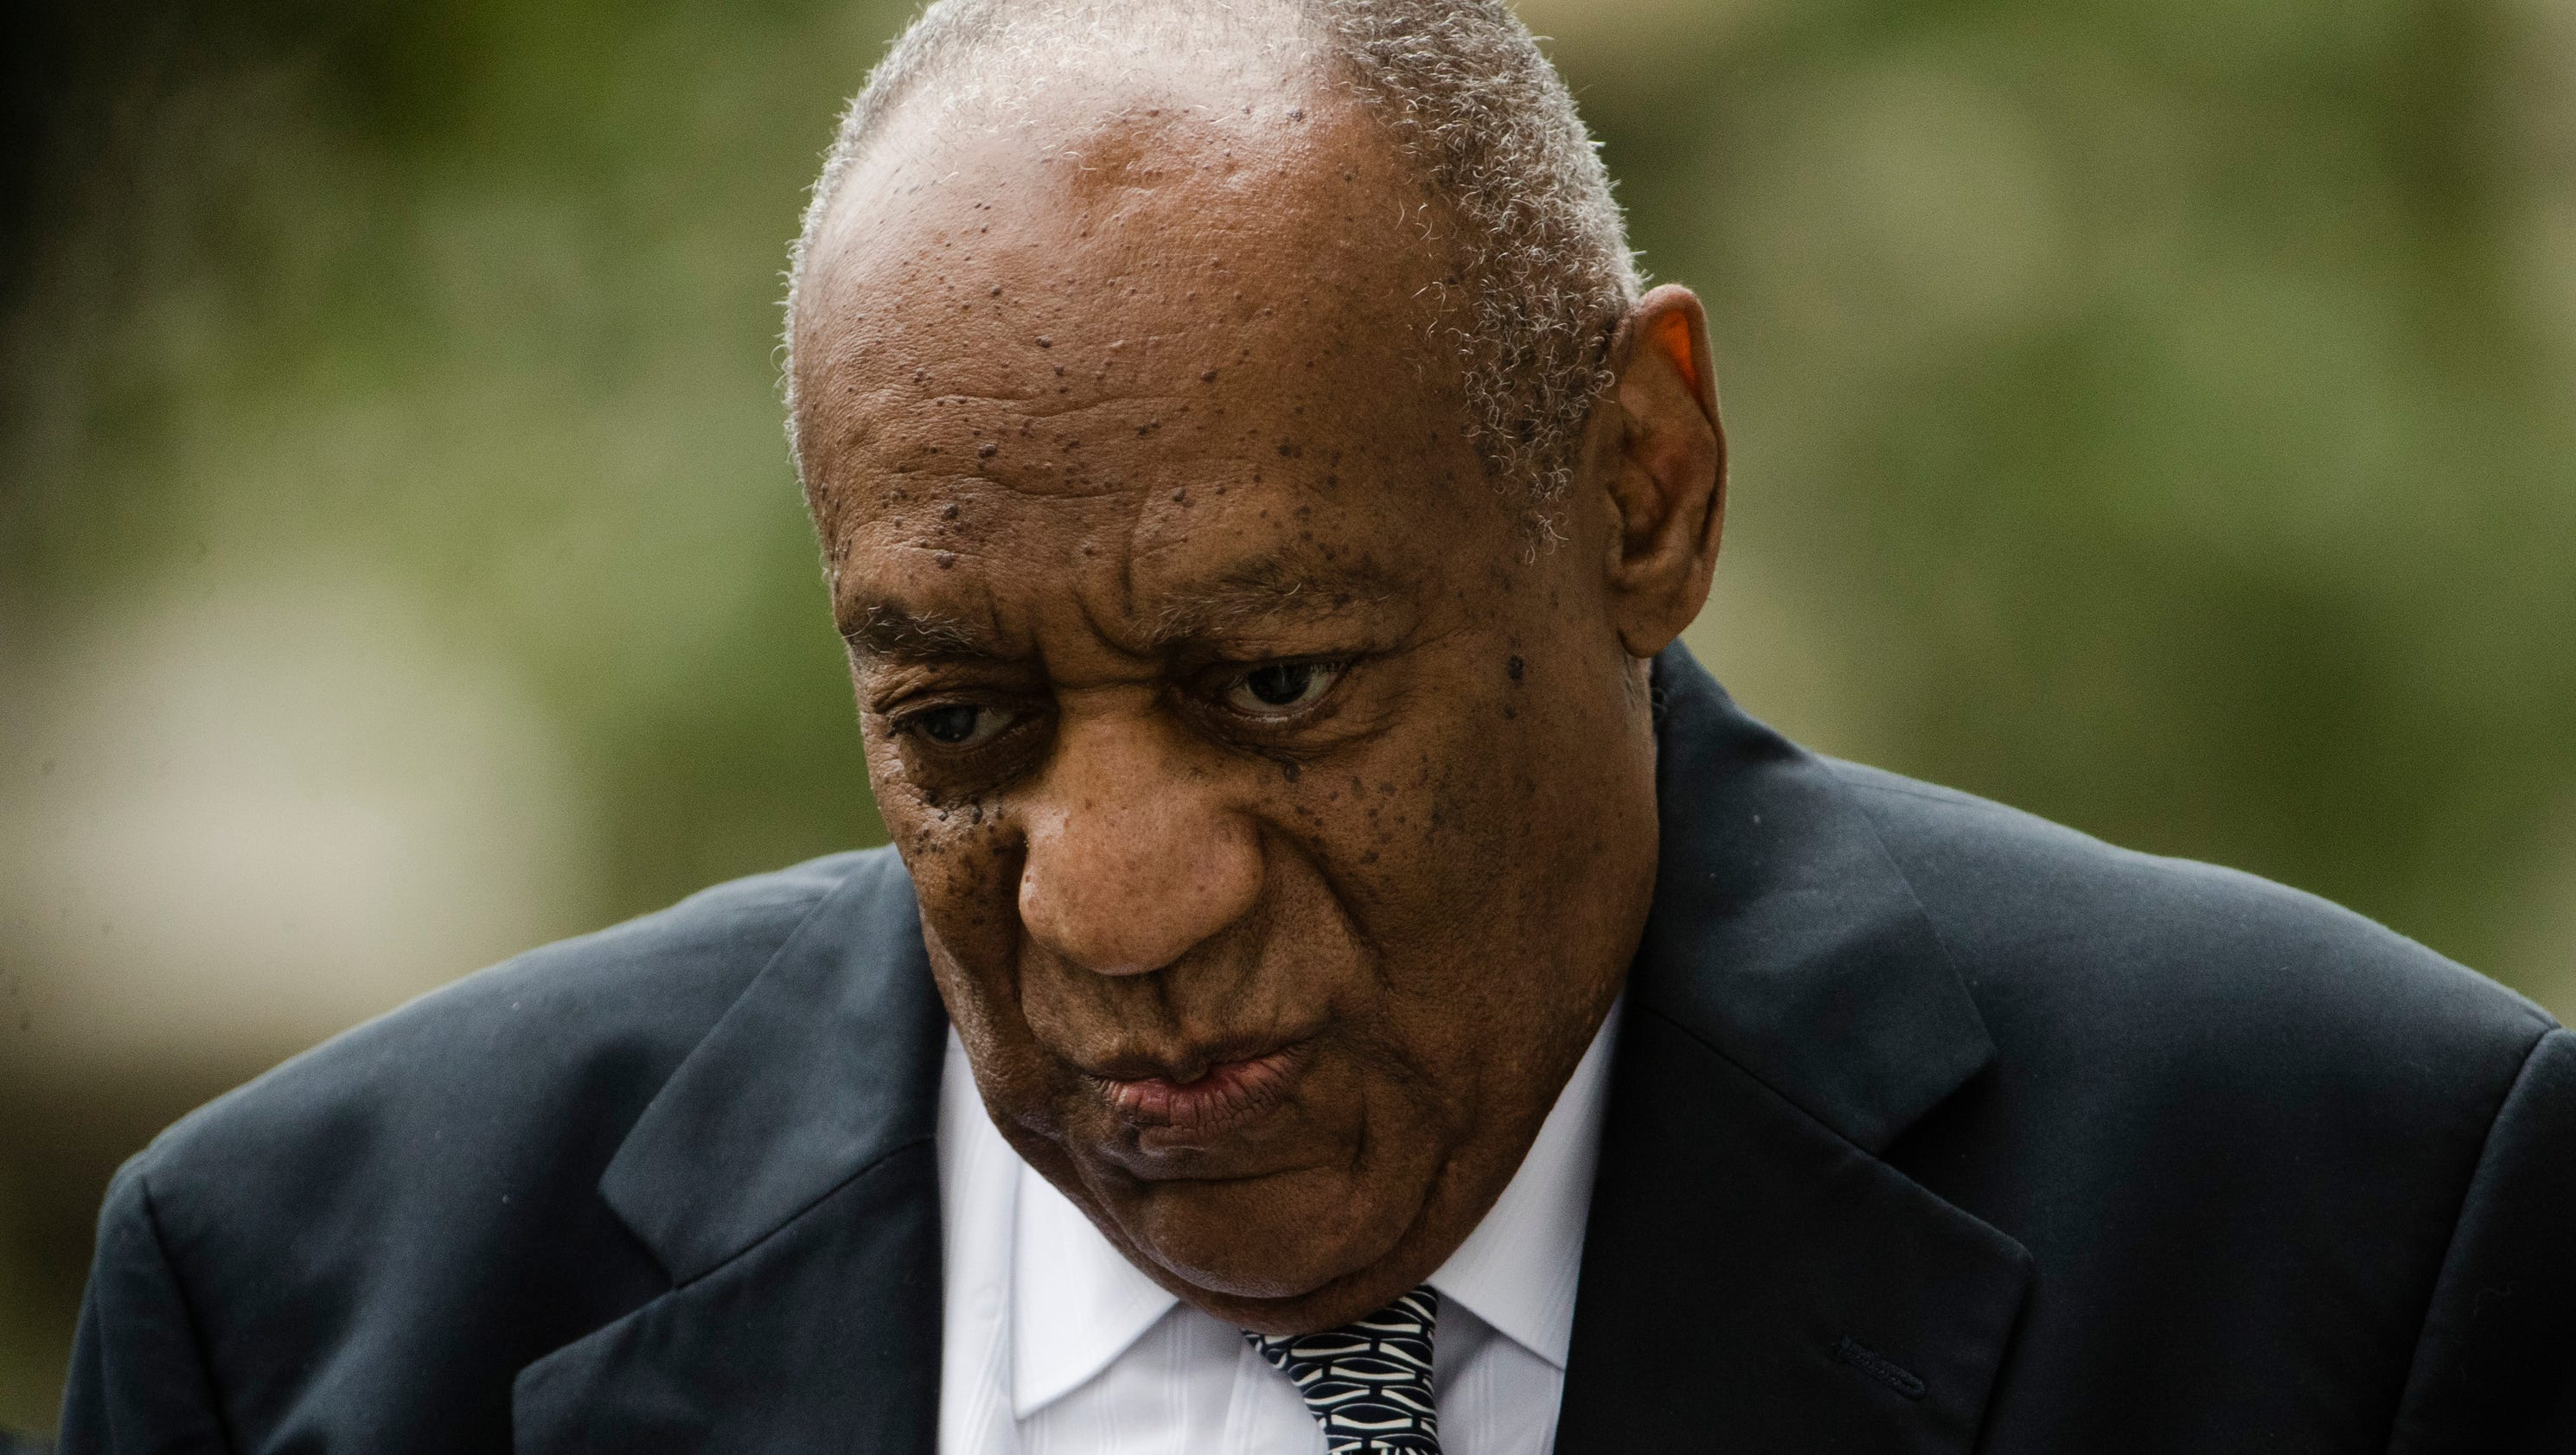 Cosby trial judge rejects mistrial jury to resume